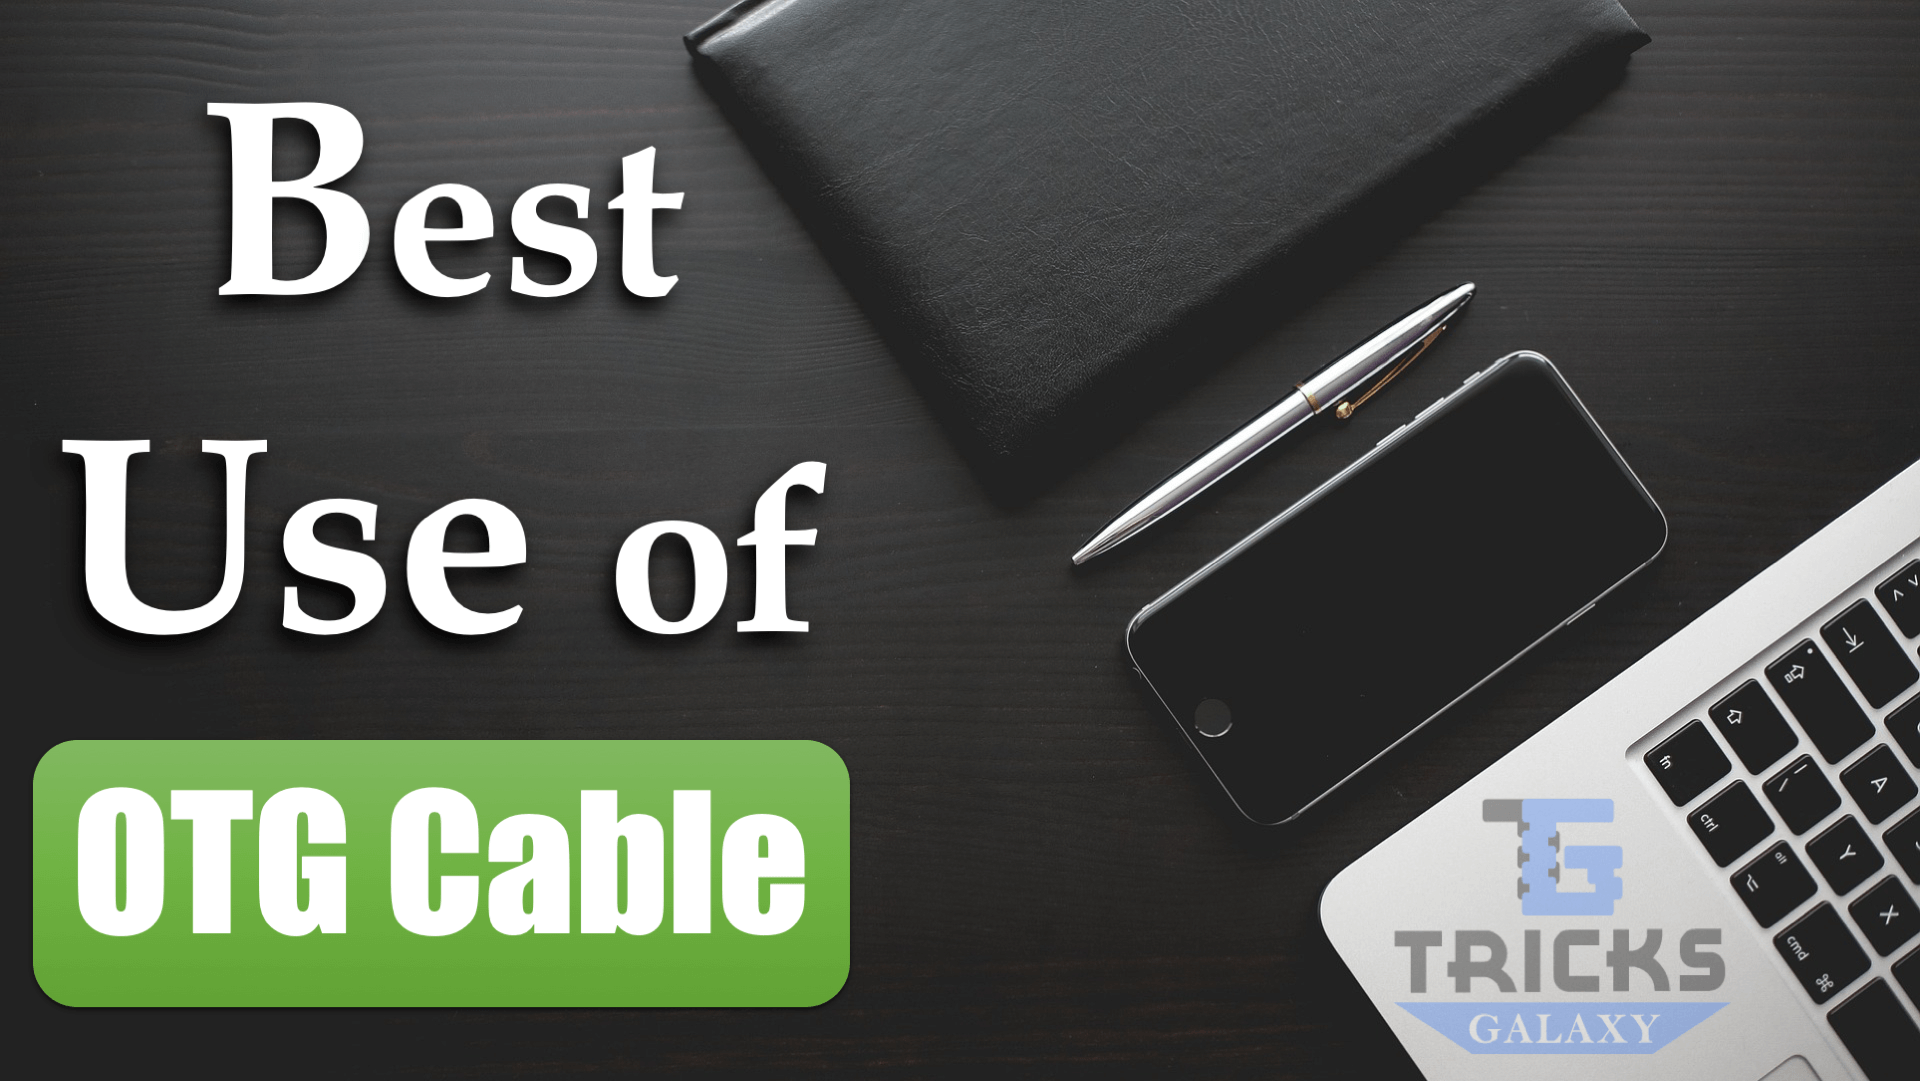 Best Uses of OTG Cable